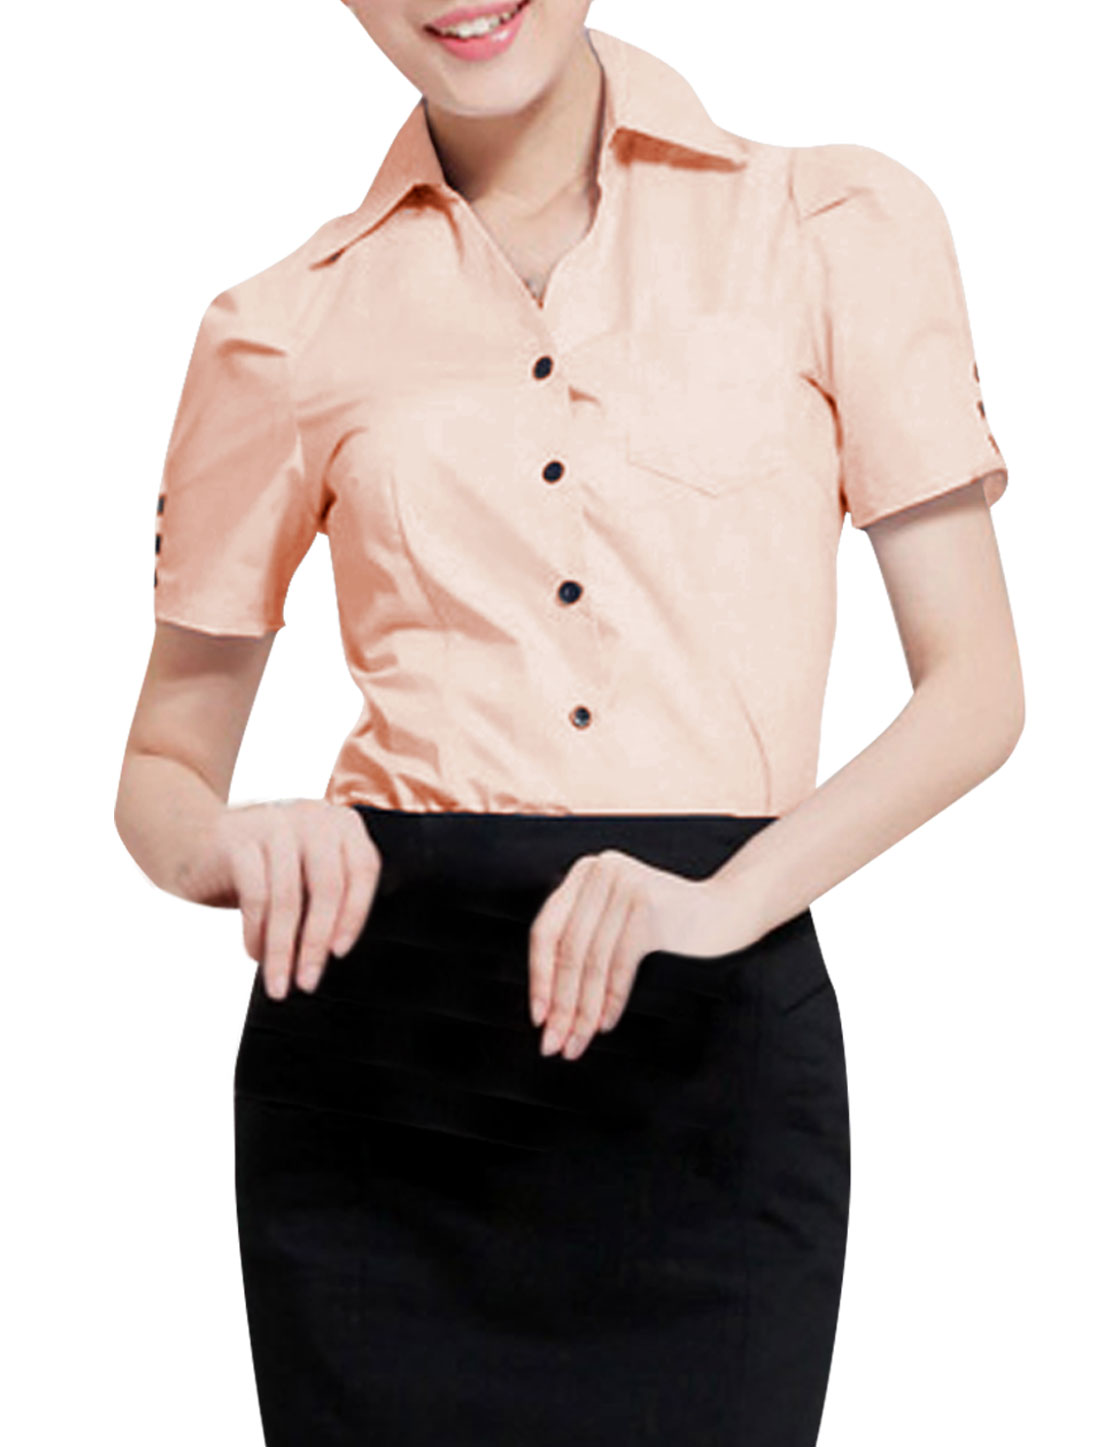 Women Button Up Short Sleeve Chest Pocket Shirt Pink S